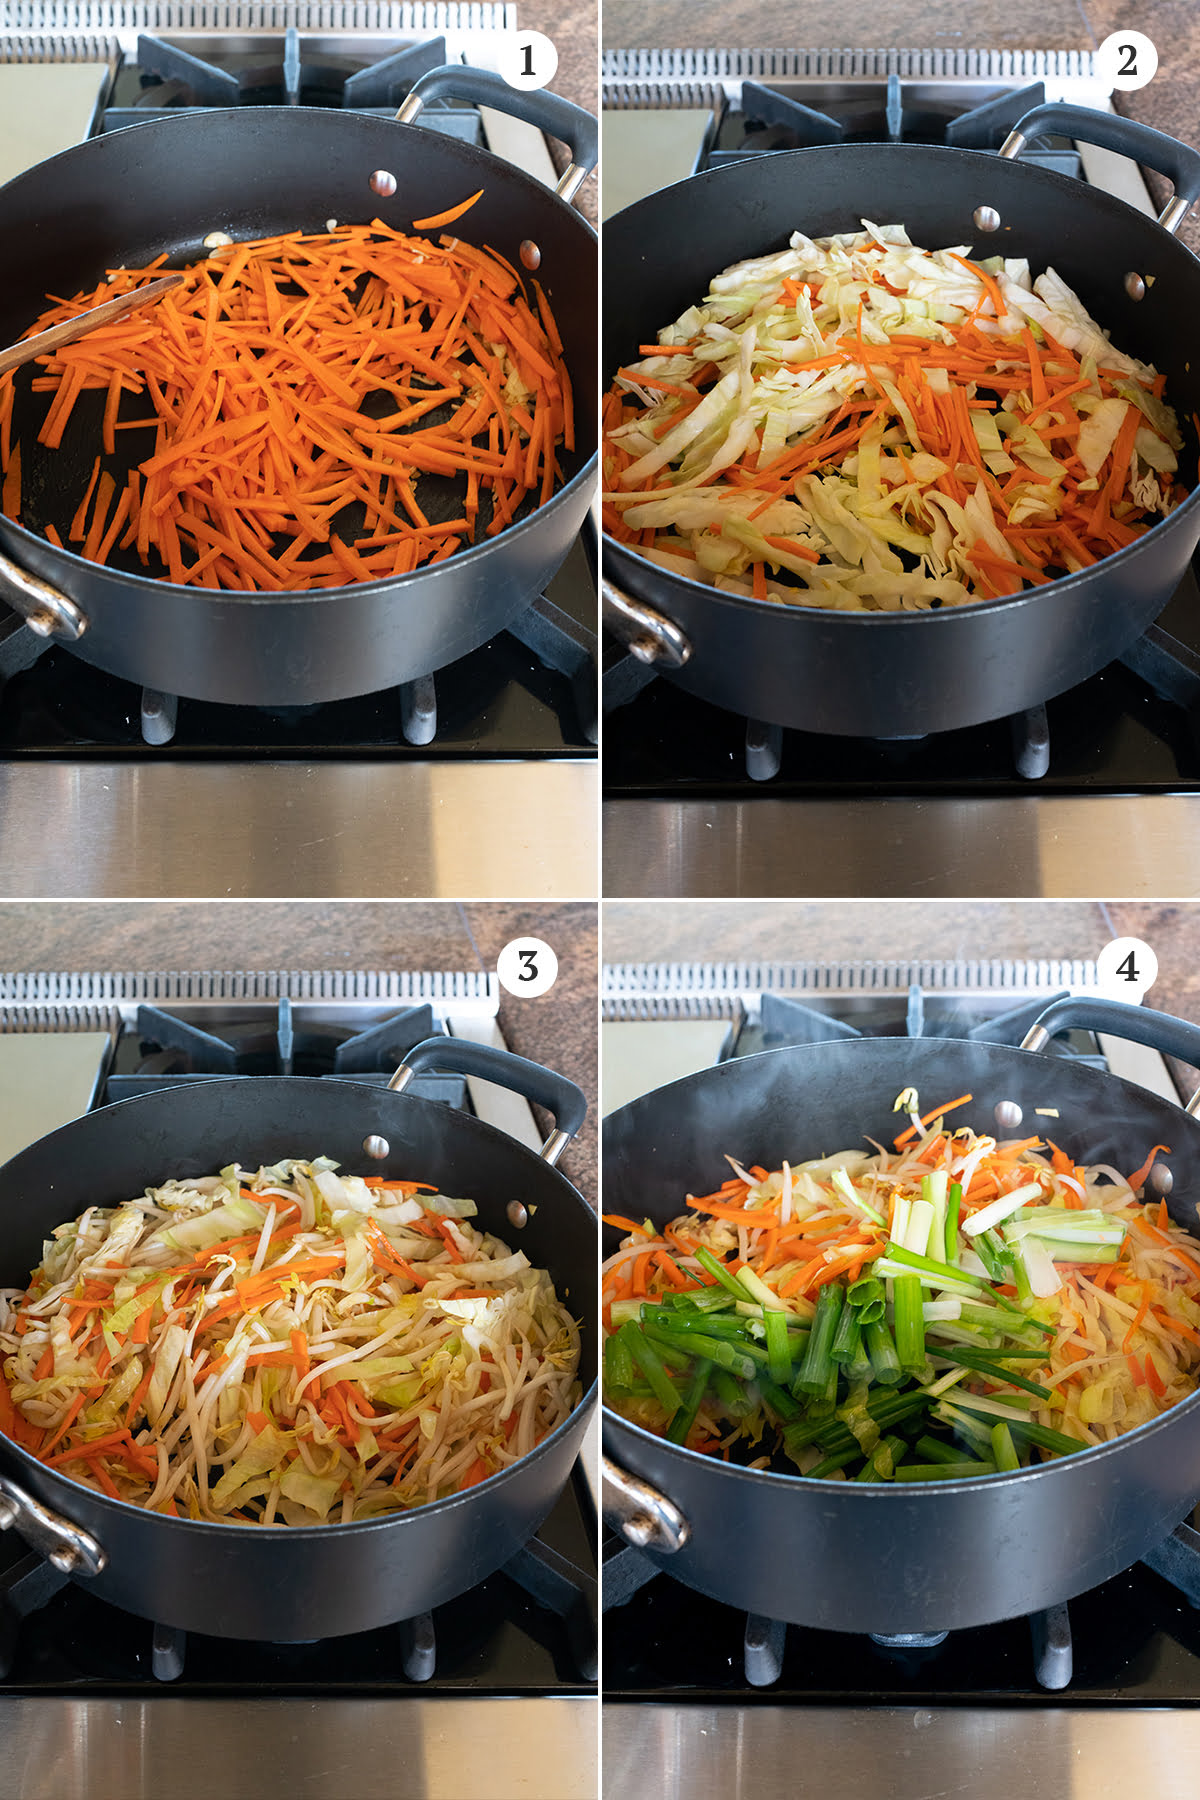 Collage of adding the vegetables to be stir fried for chow fun. Carrots go in first, followed by the cabbage, mung bean sprouts, and green onions.